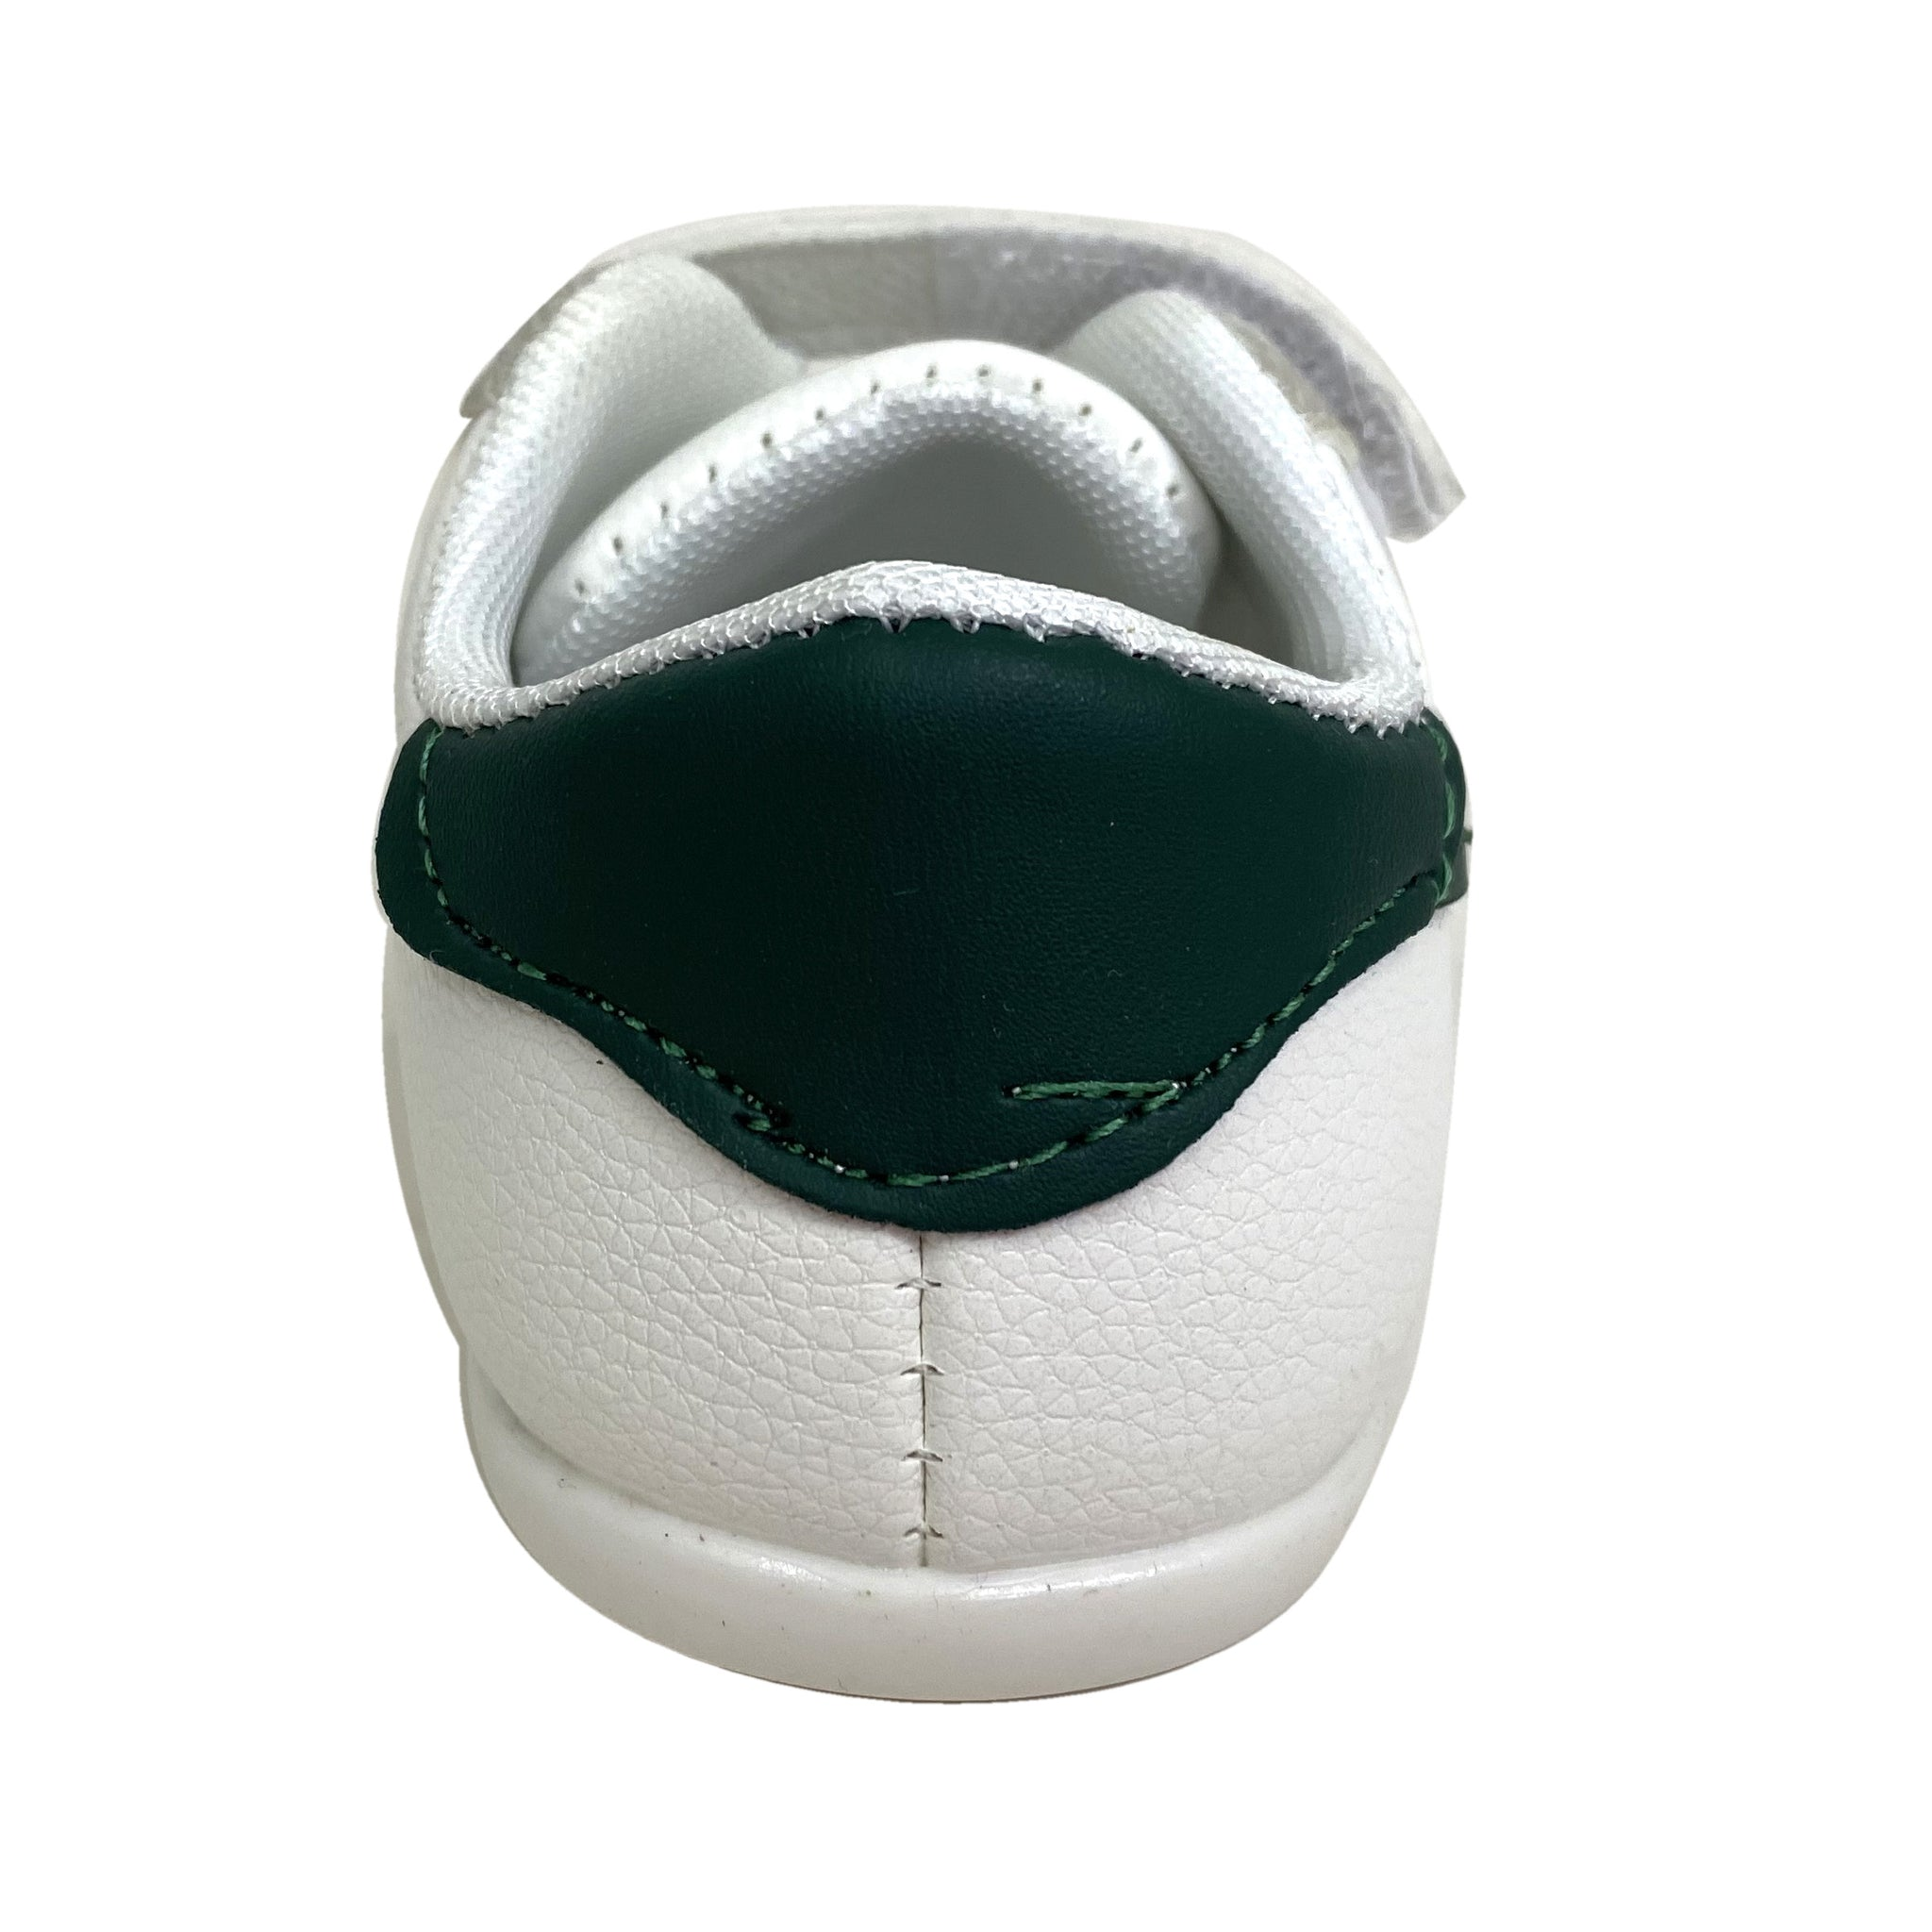 S187 1st Walker Baby Cosmos Sports Green (EU18-21)